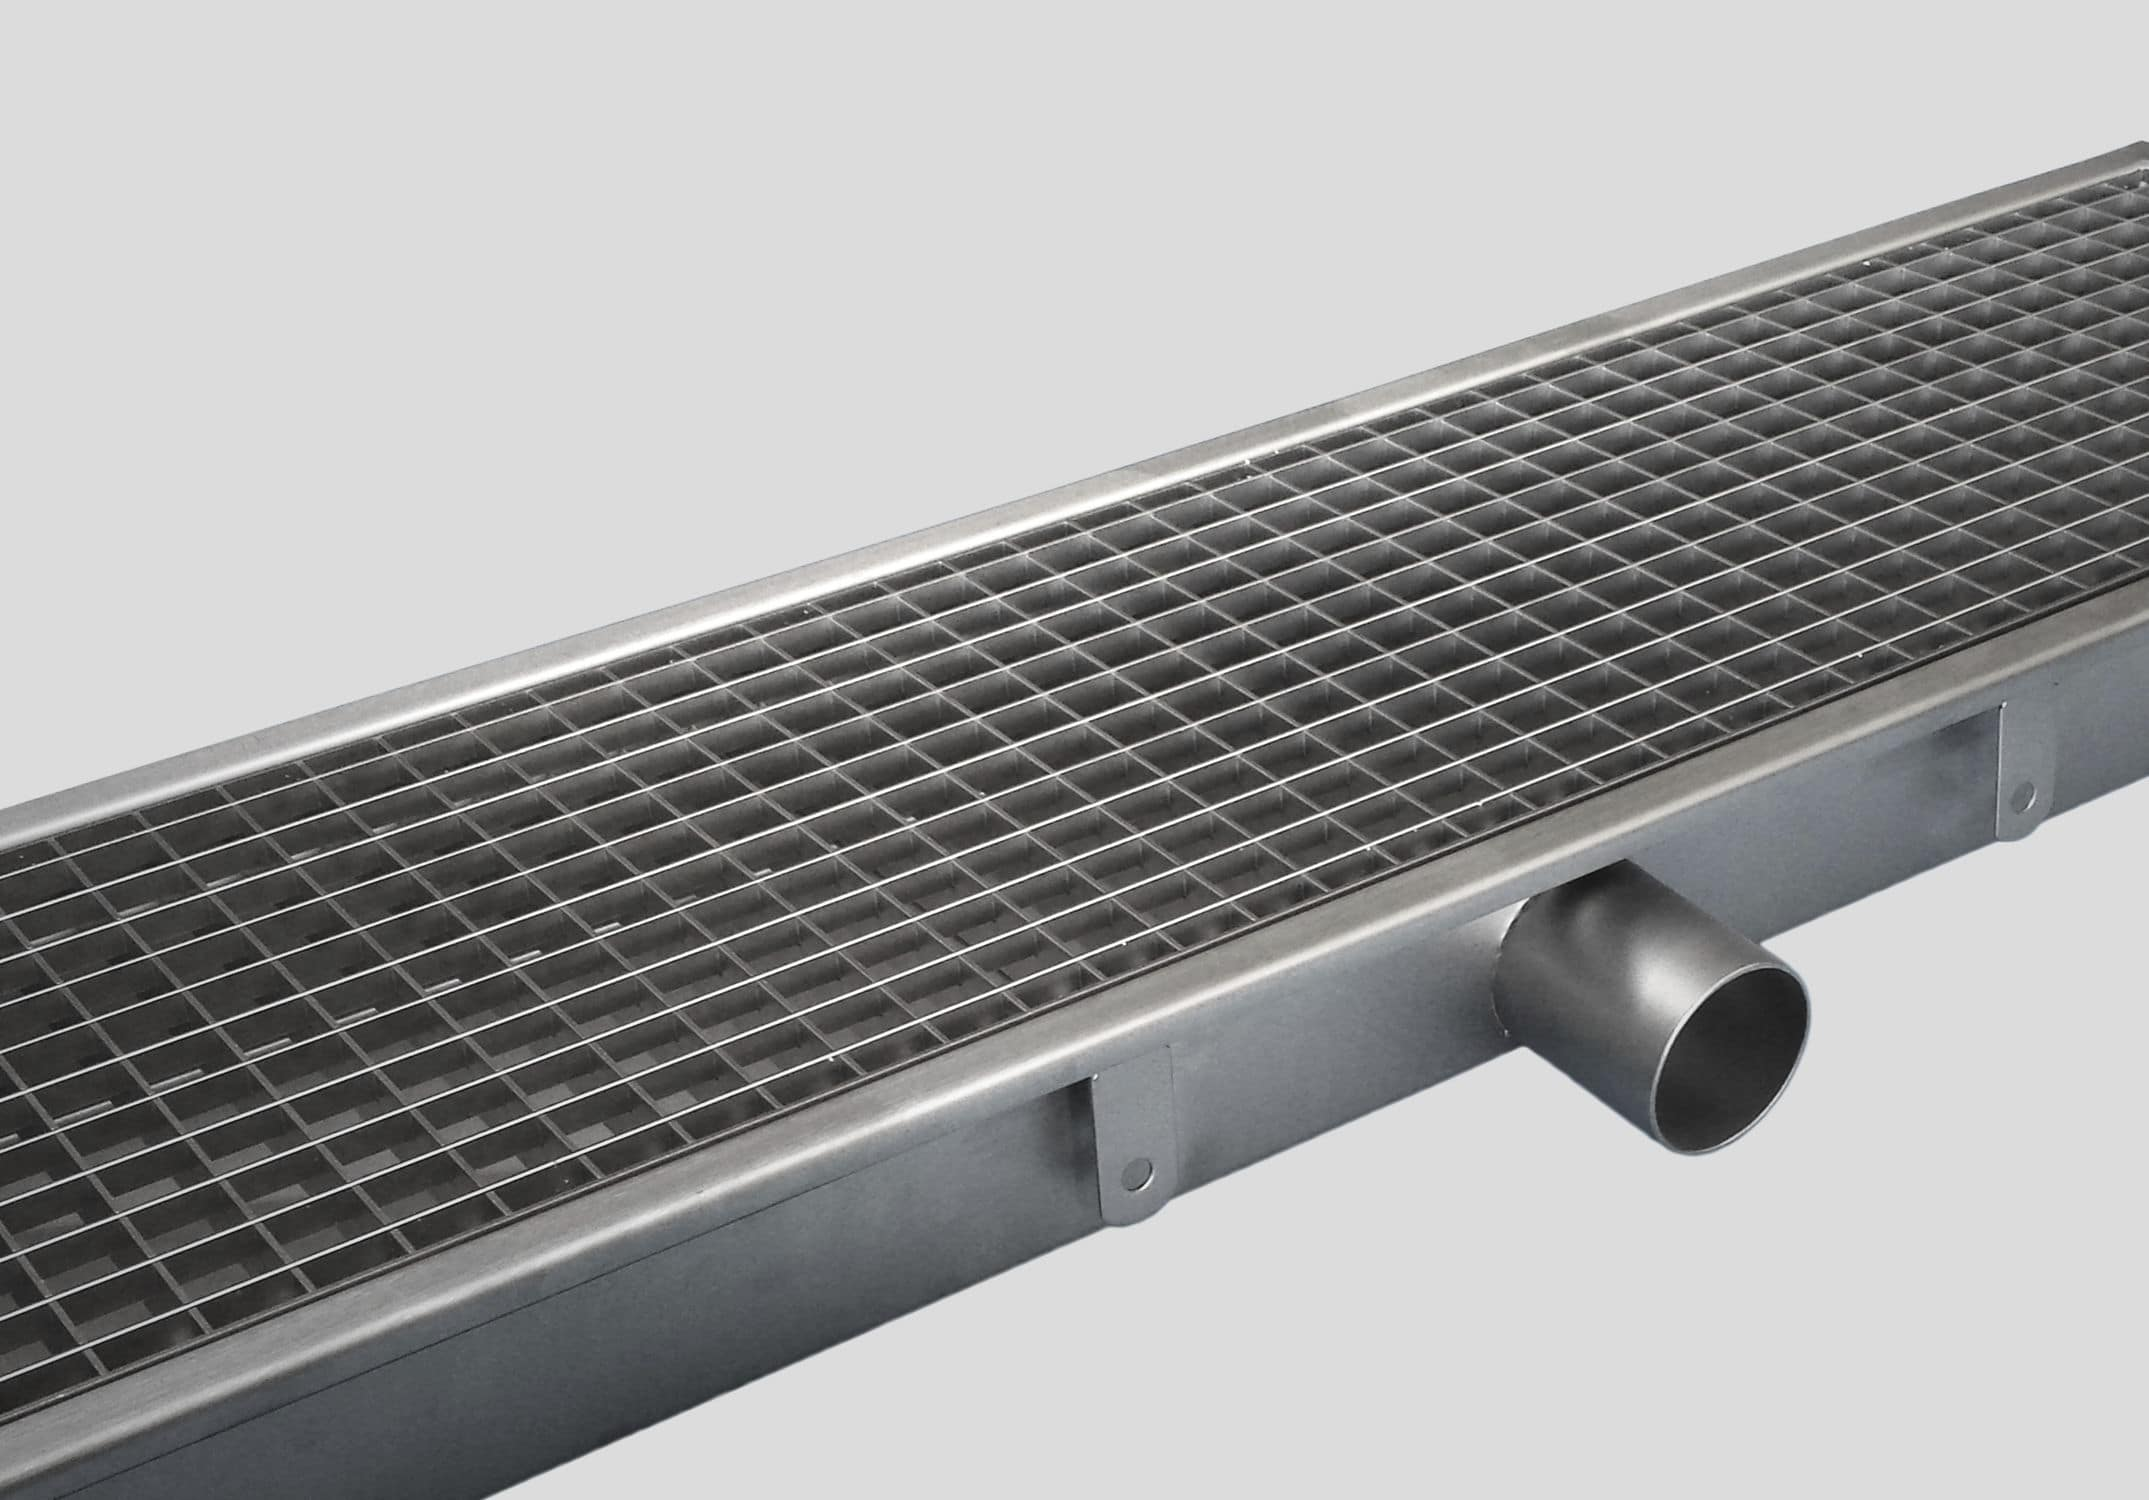 kitchen drain pacific fan drainage channel stainless steel with grating 0810